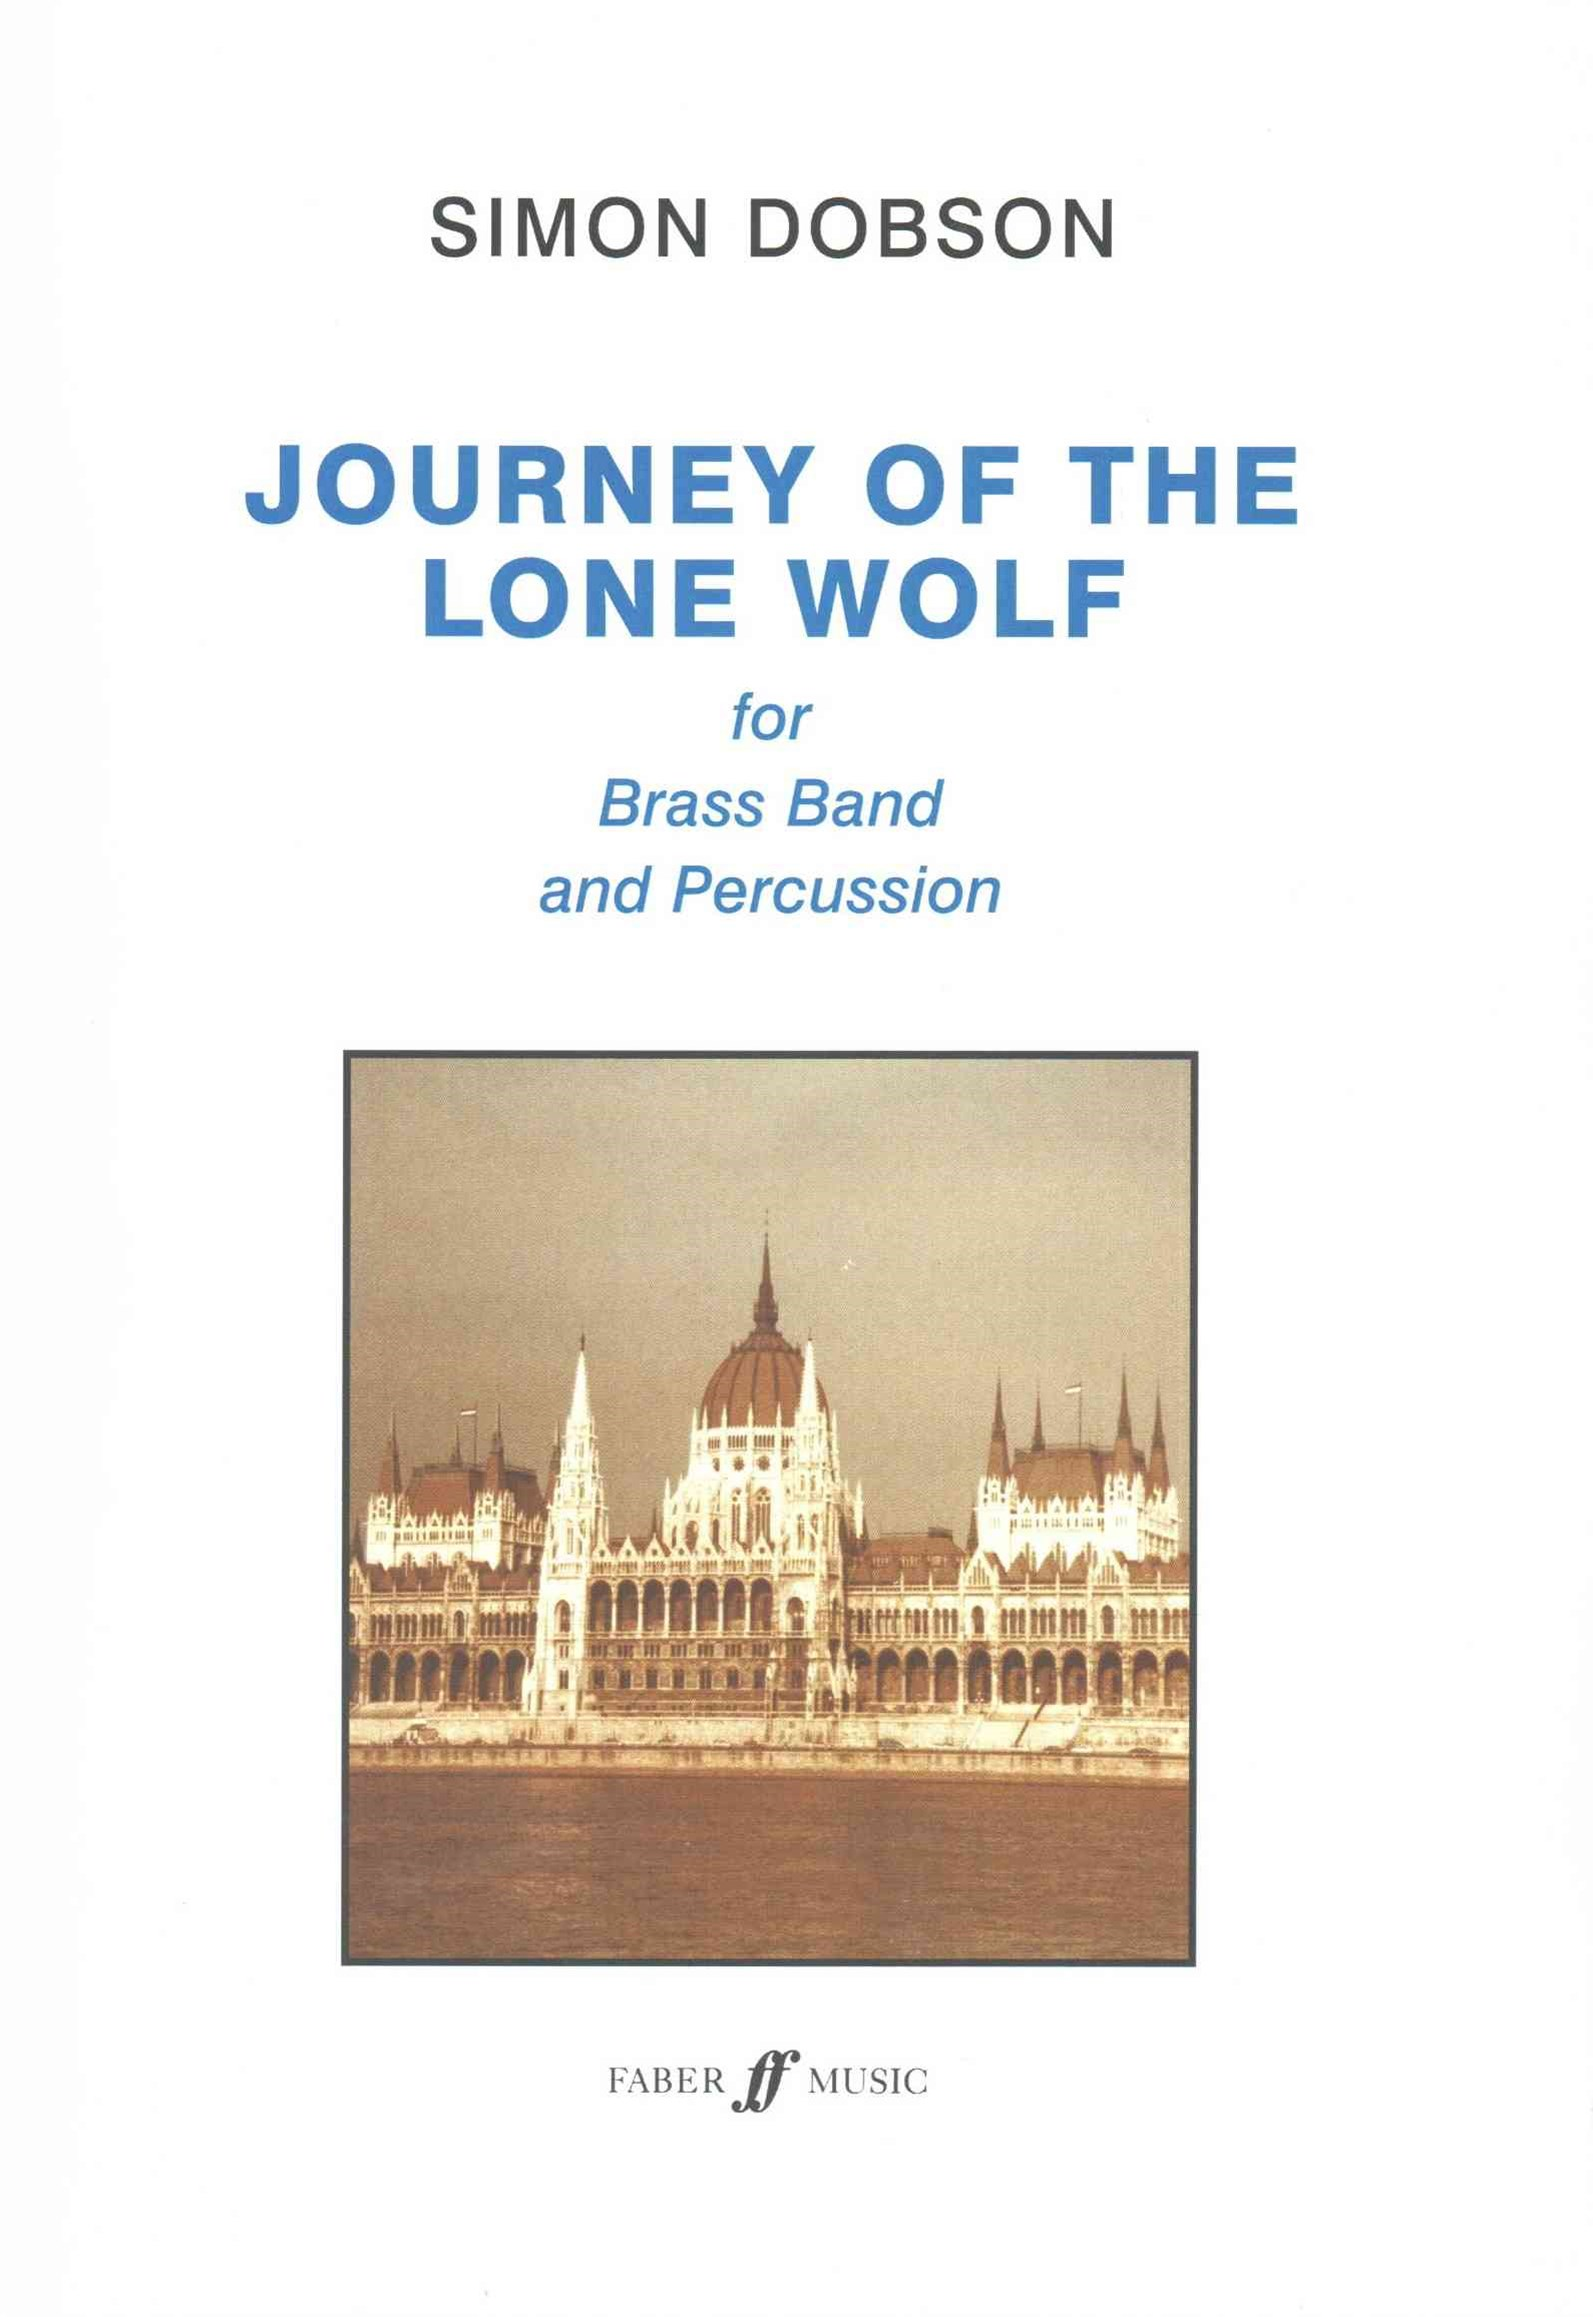 Journey of the Lone Wolf